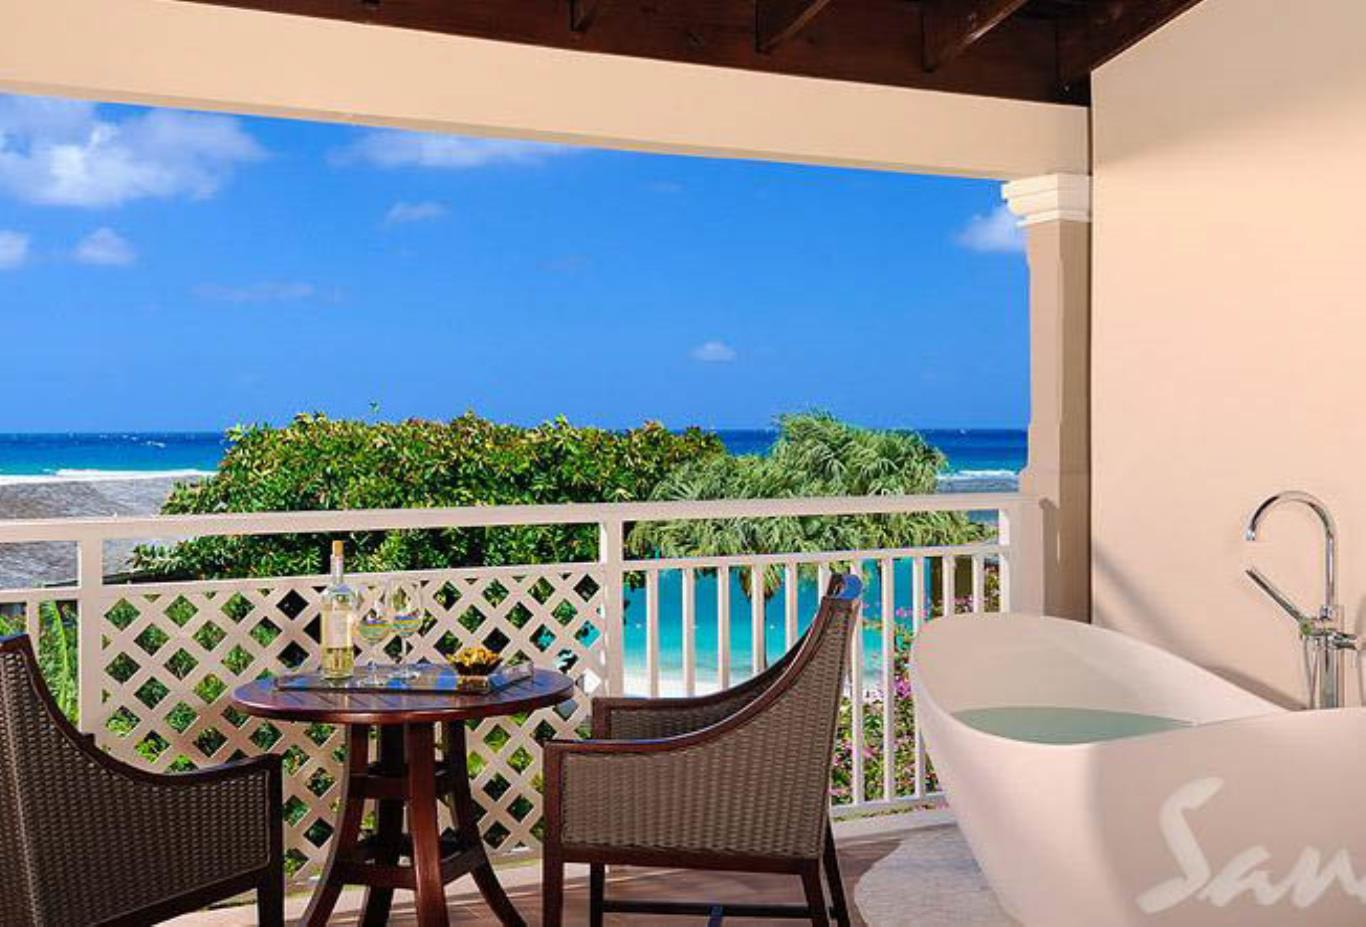 Honeymoon Grand Luxury Butler Suite with Balcony Tranquility Soaking - HGBT